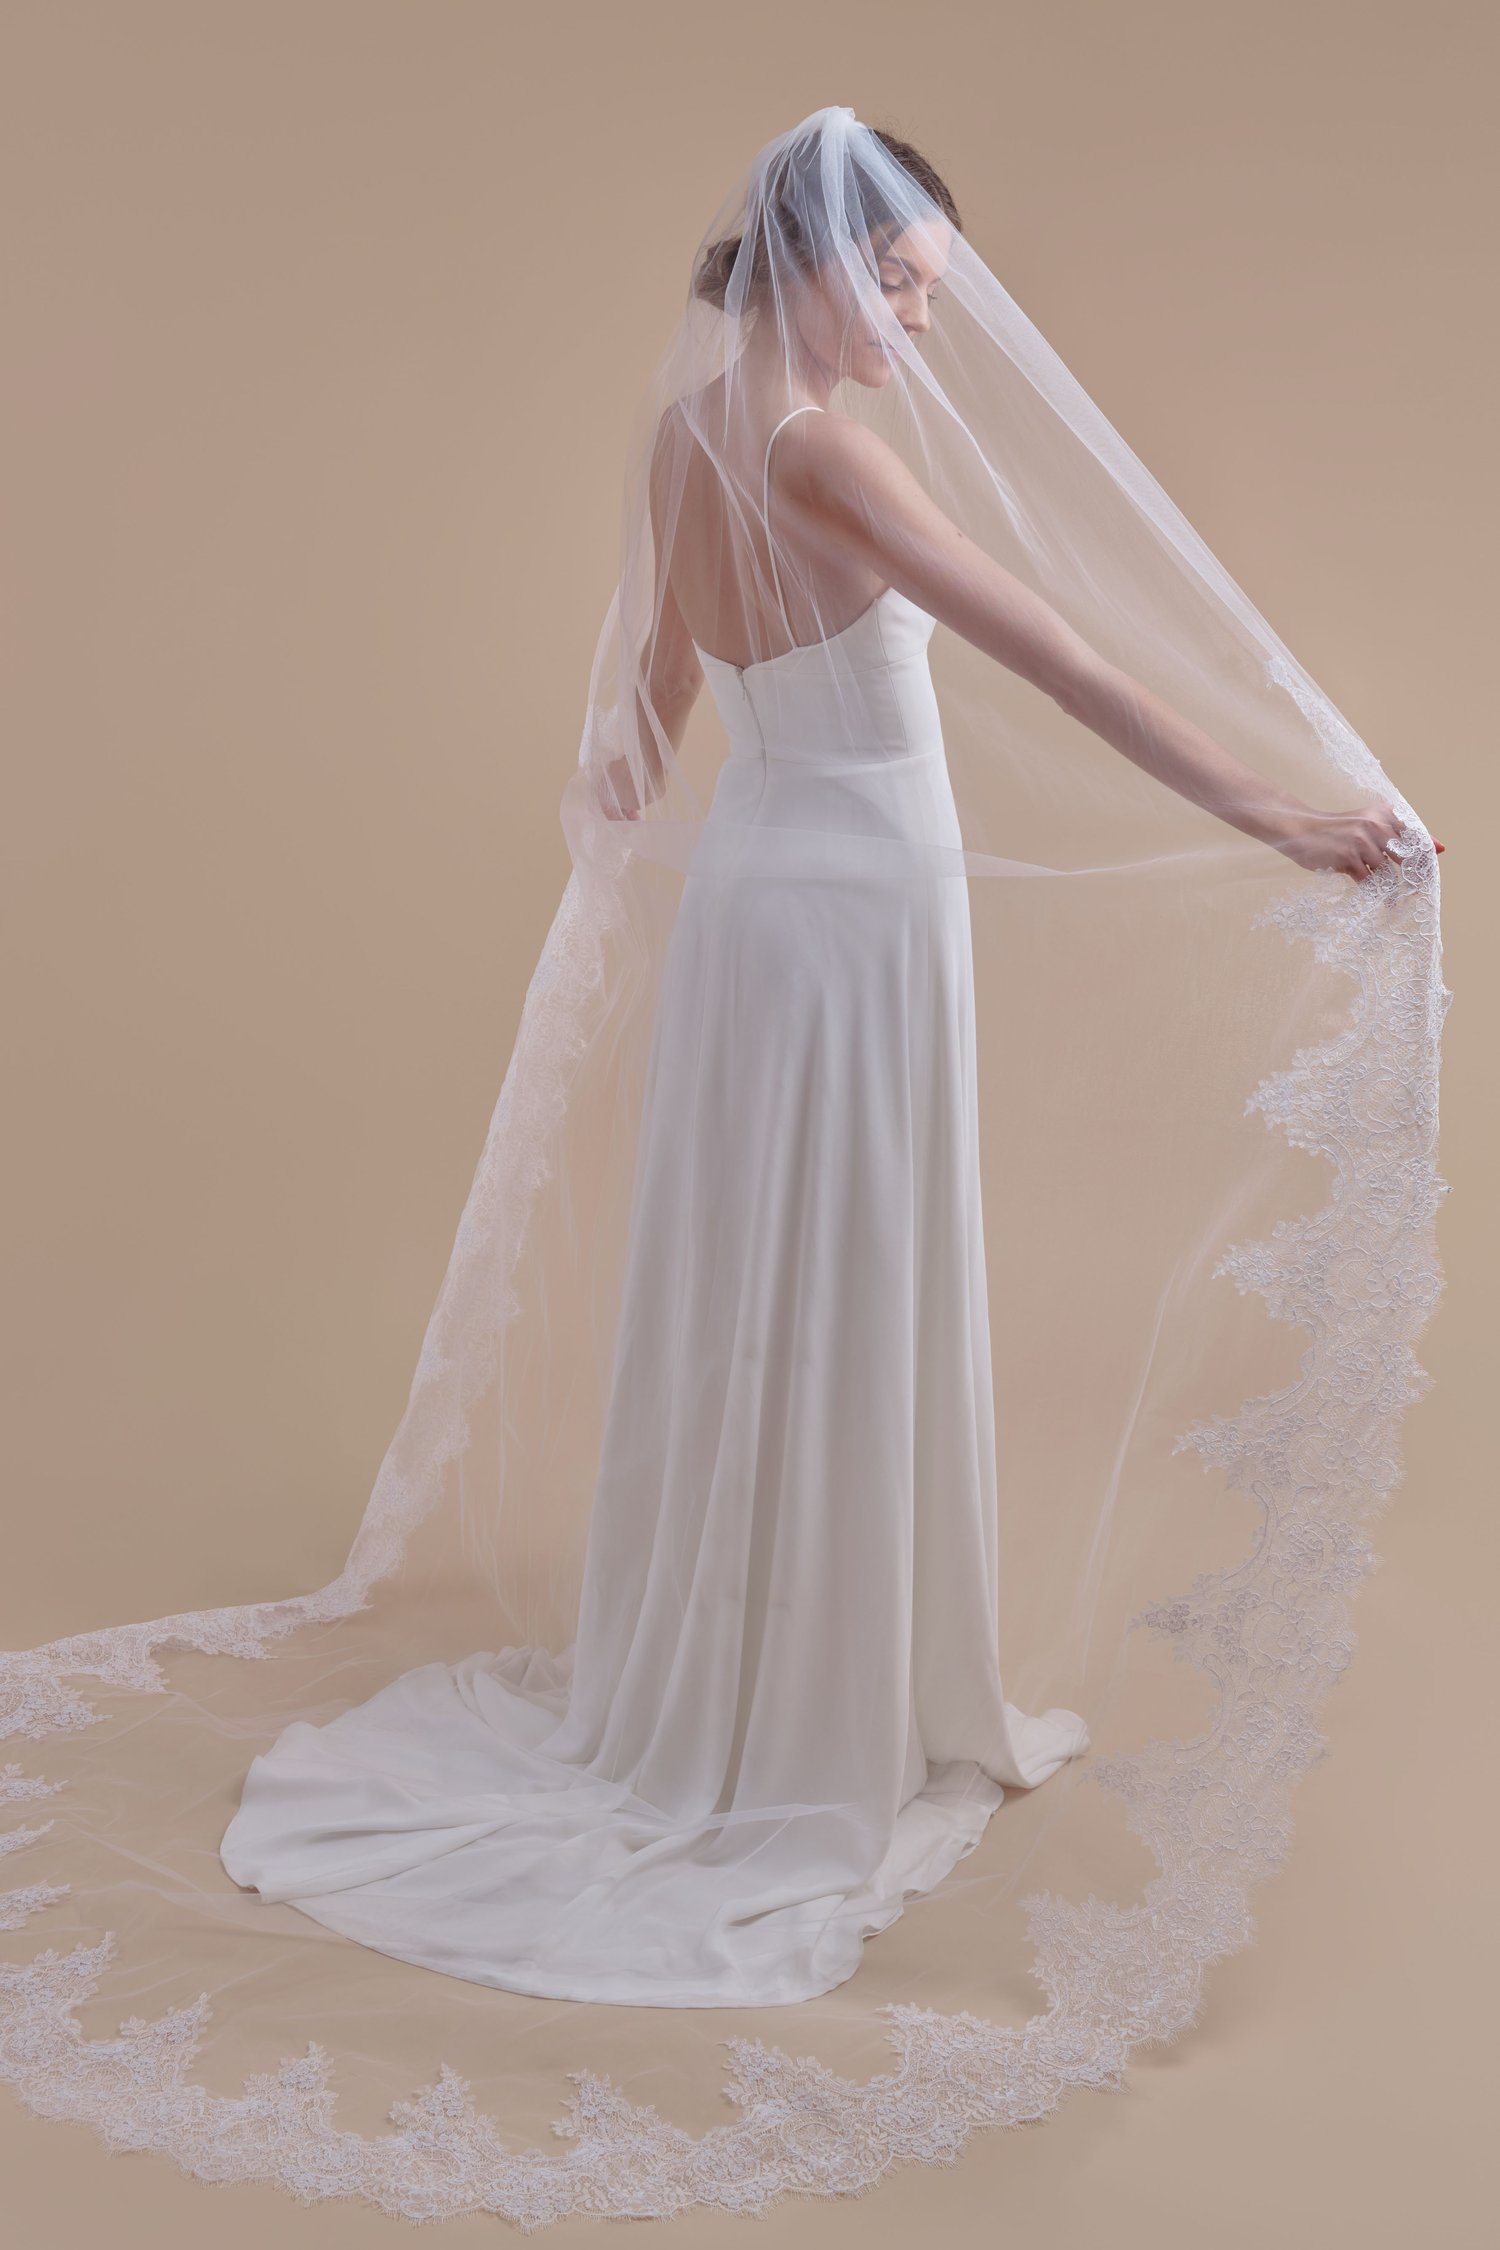 Anomalie, Royal Treatment Cathedral Length, Affordable Veil.jpg